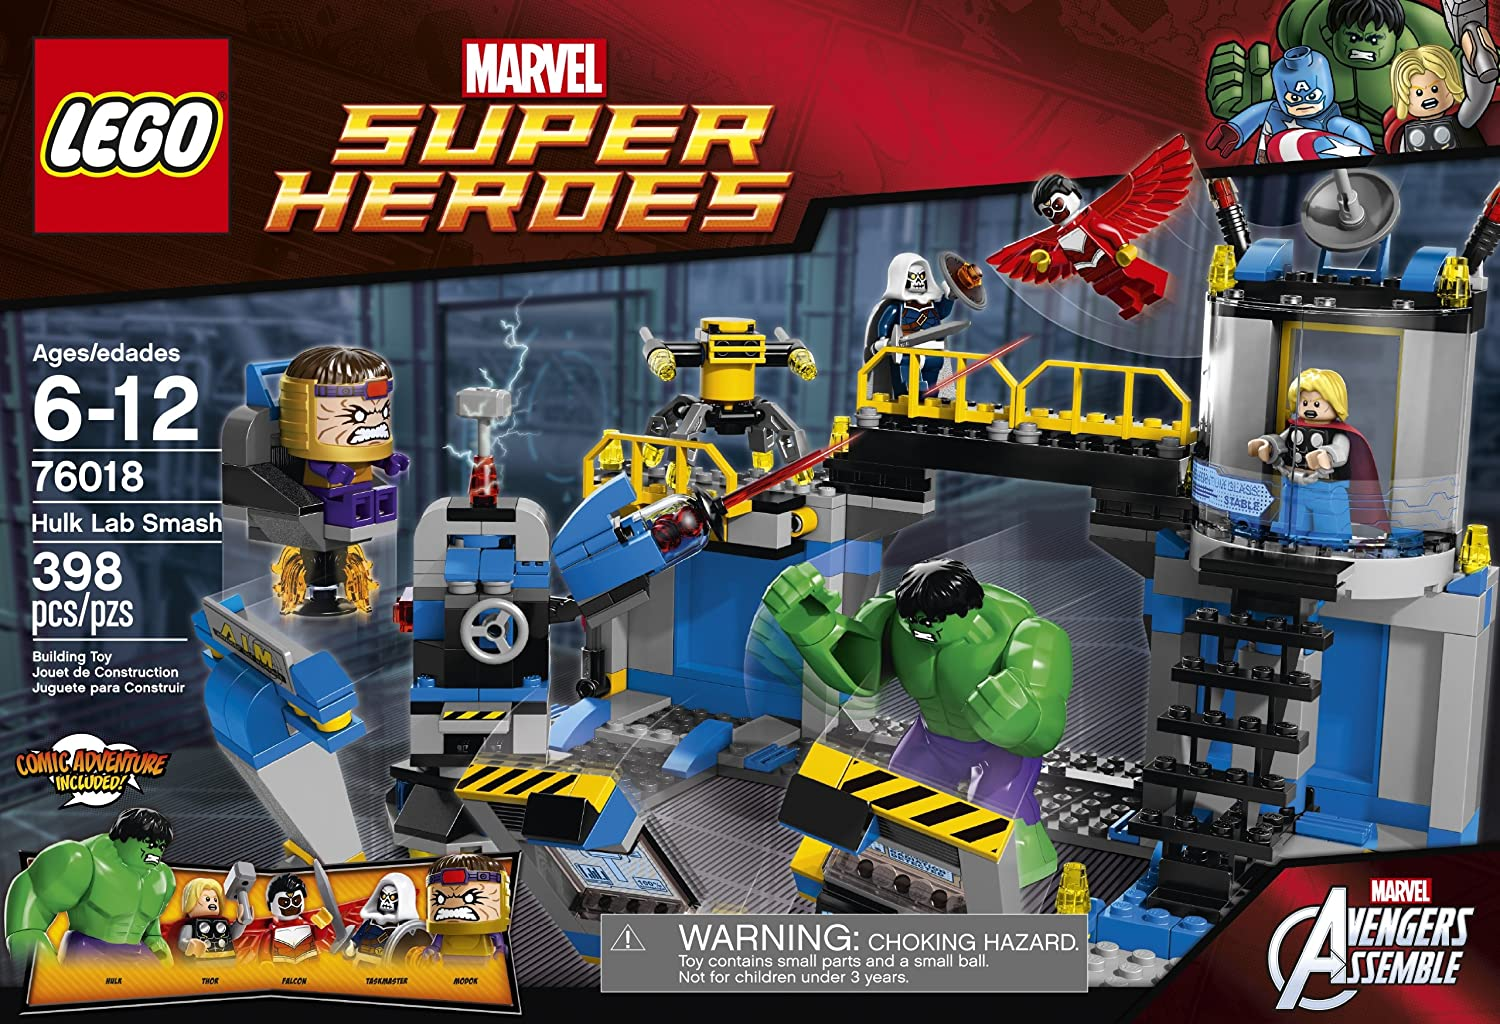 Whats Your Latest Non Motu Toy Item Score Page 207 Lego 41060 Disney Princess Sleeping Beautyamp039s Royal Bedroom Plus For My Niece I Got In A Beauty